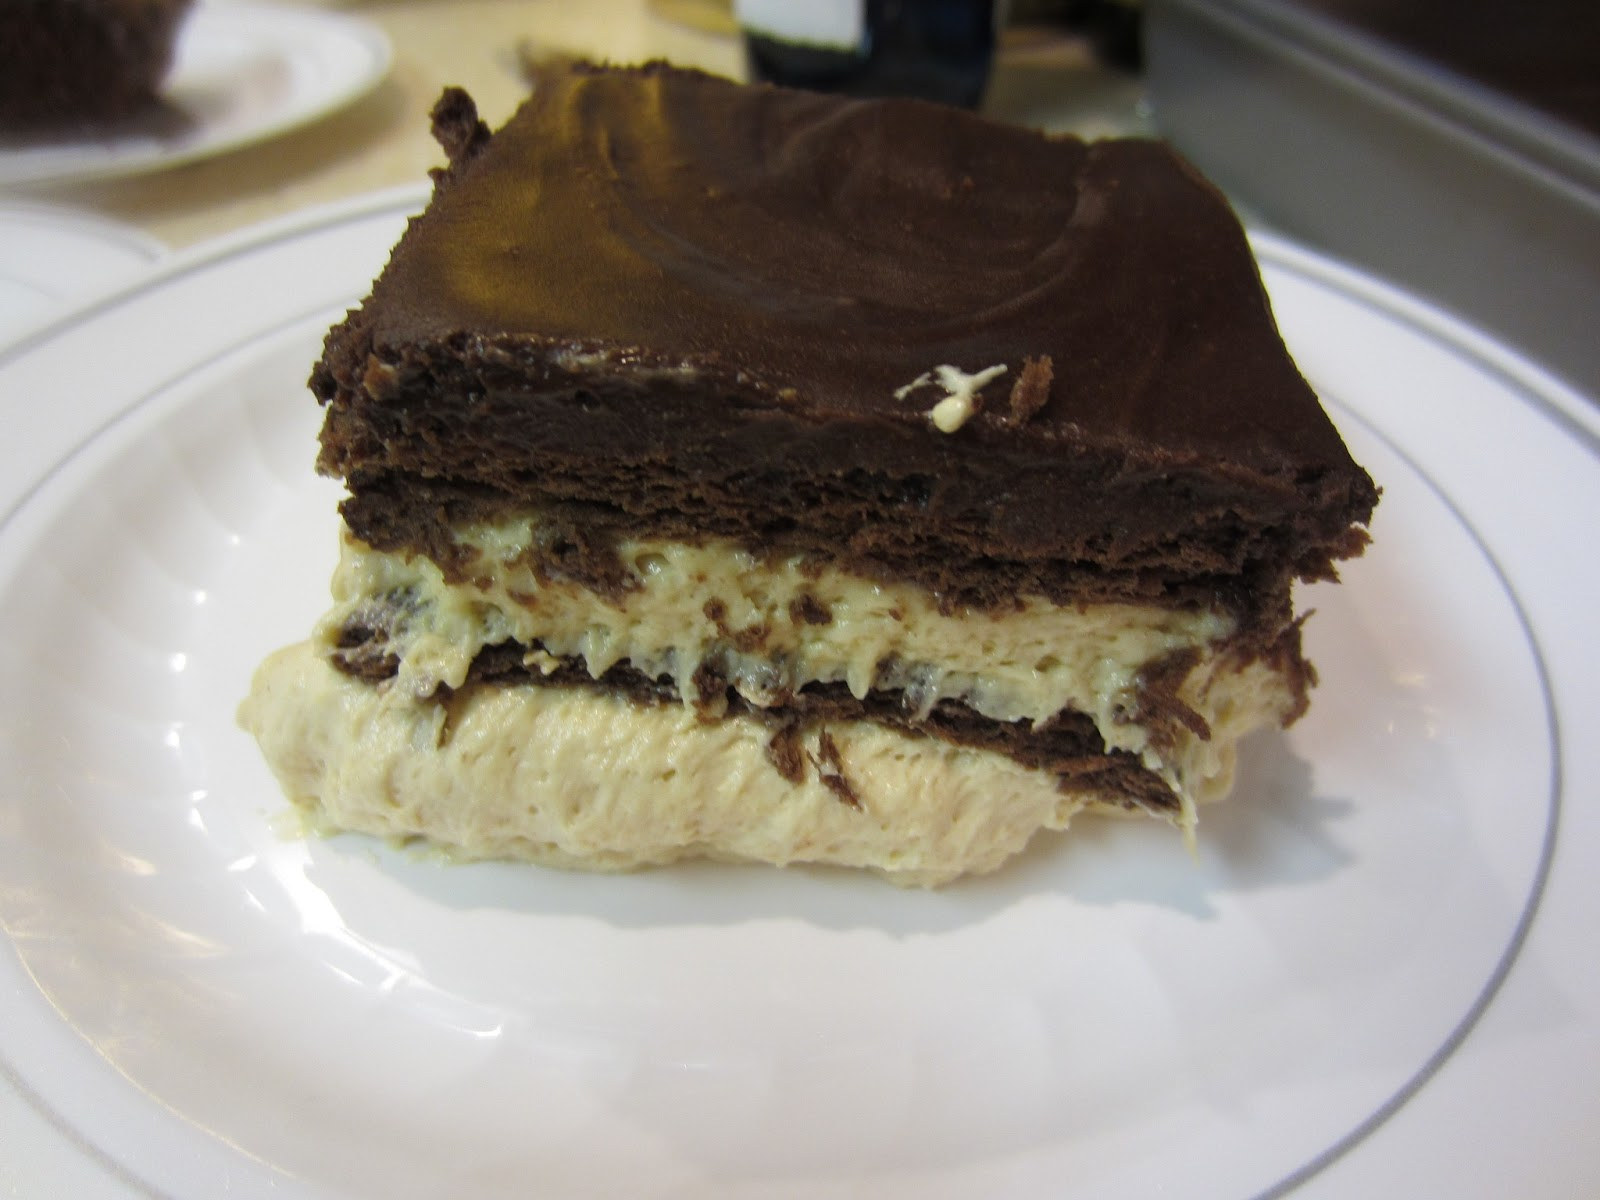 My Patchwork Quilt: CHOCOLATE PEANUT BUTTER DESSERT